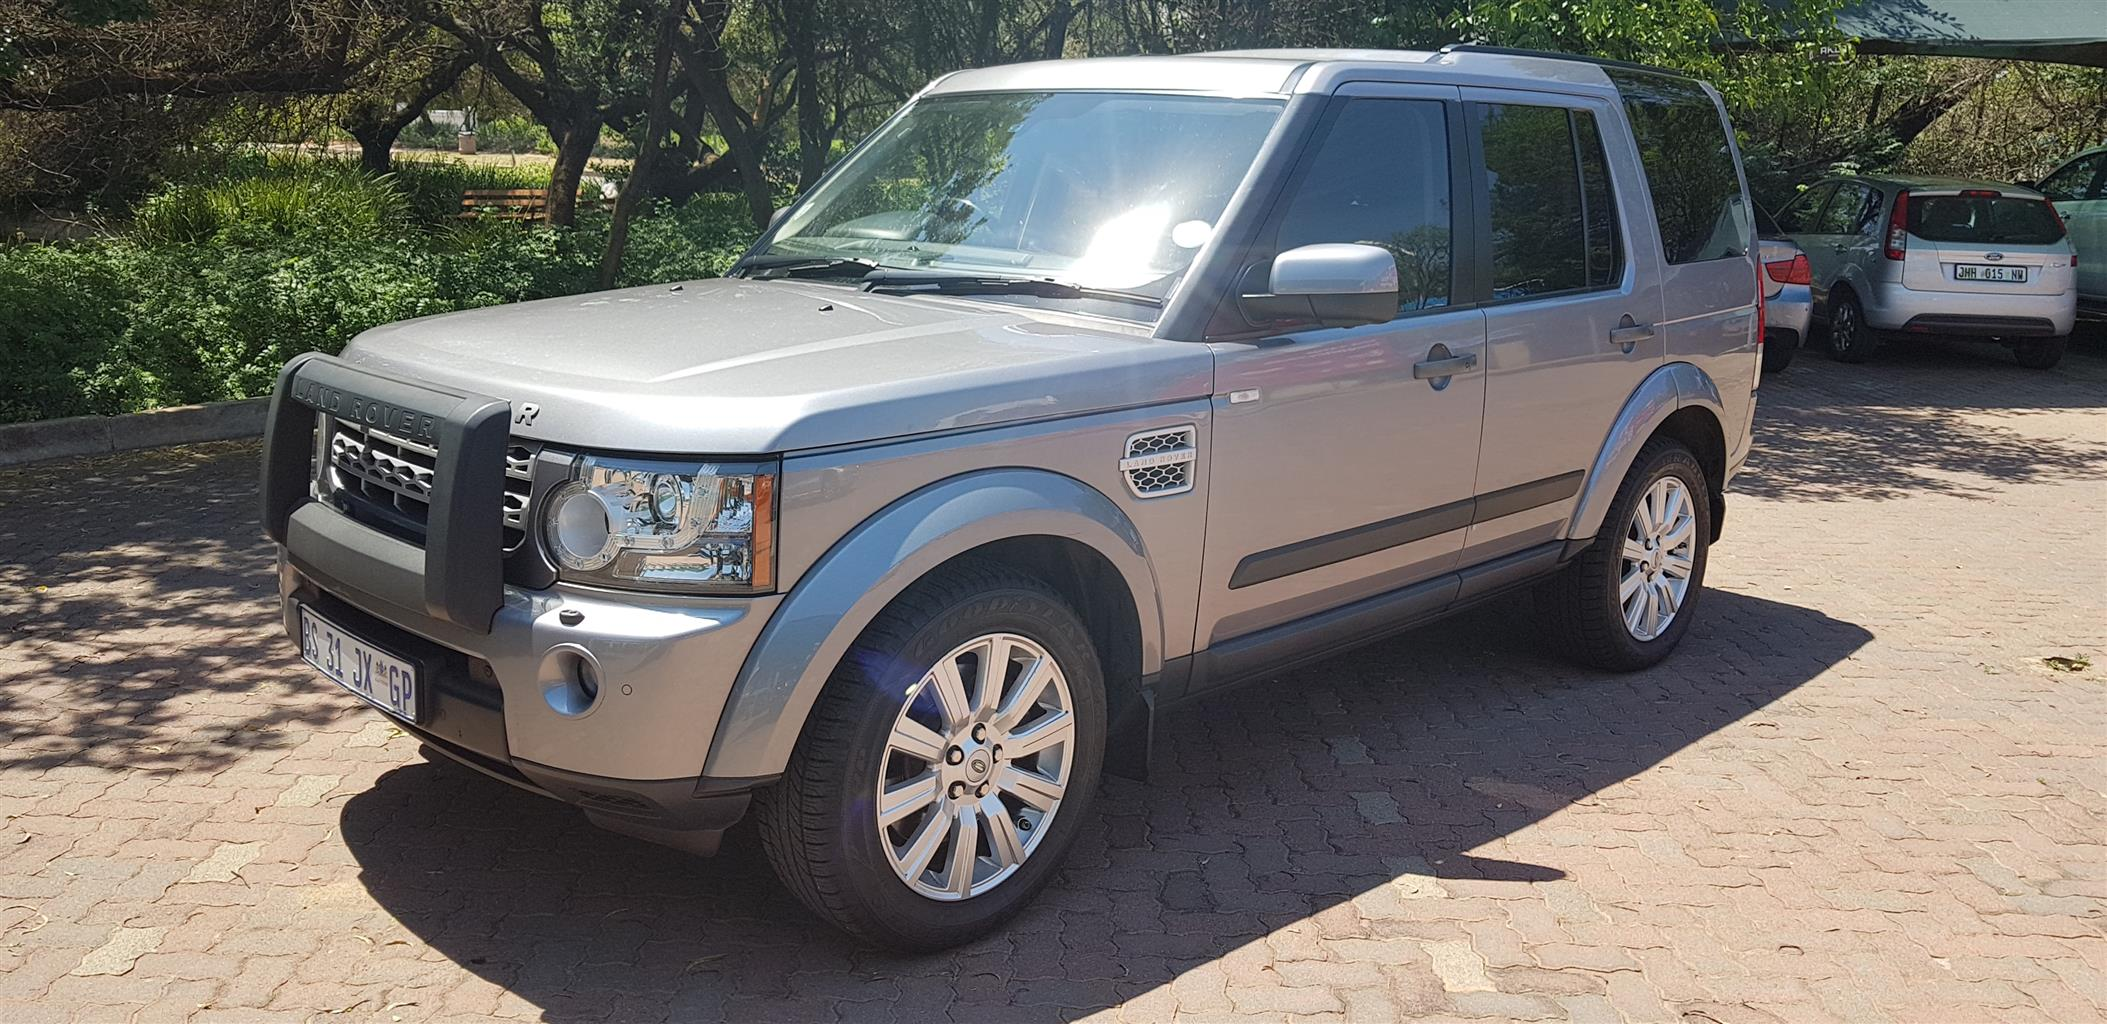 2012 land rover discovery 4 v8 hse   junk mail